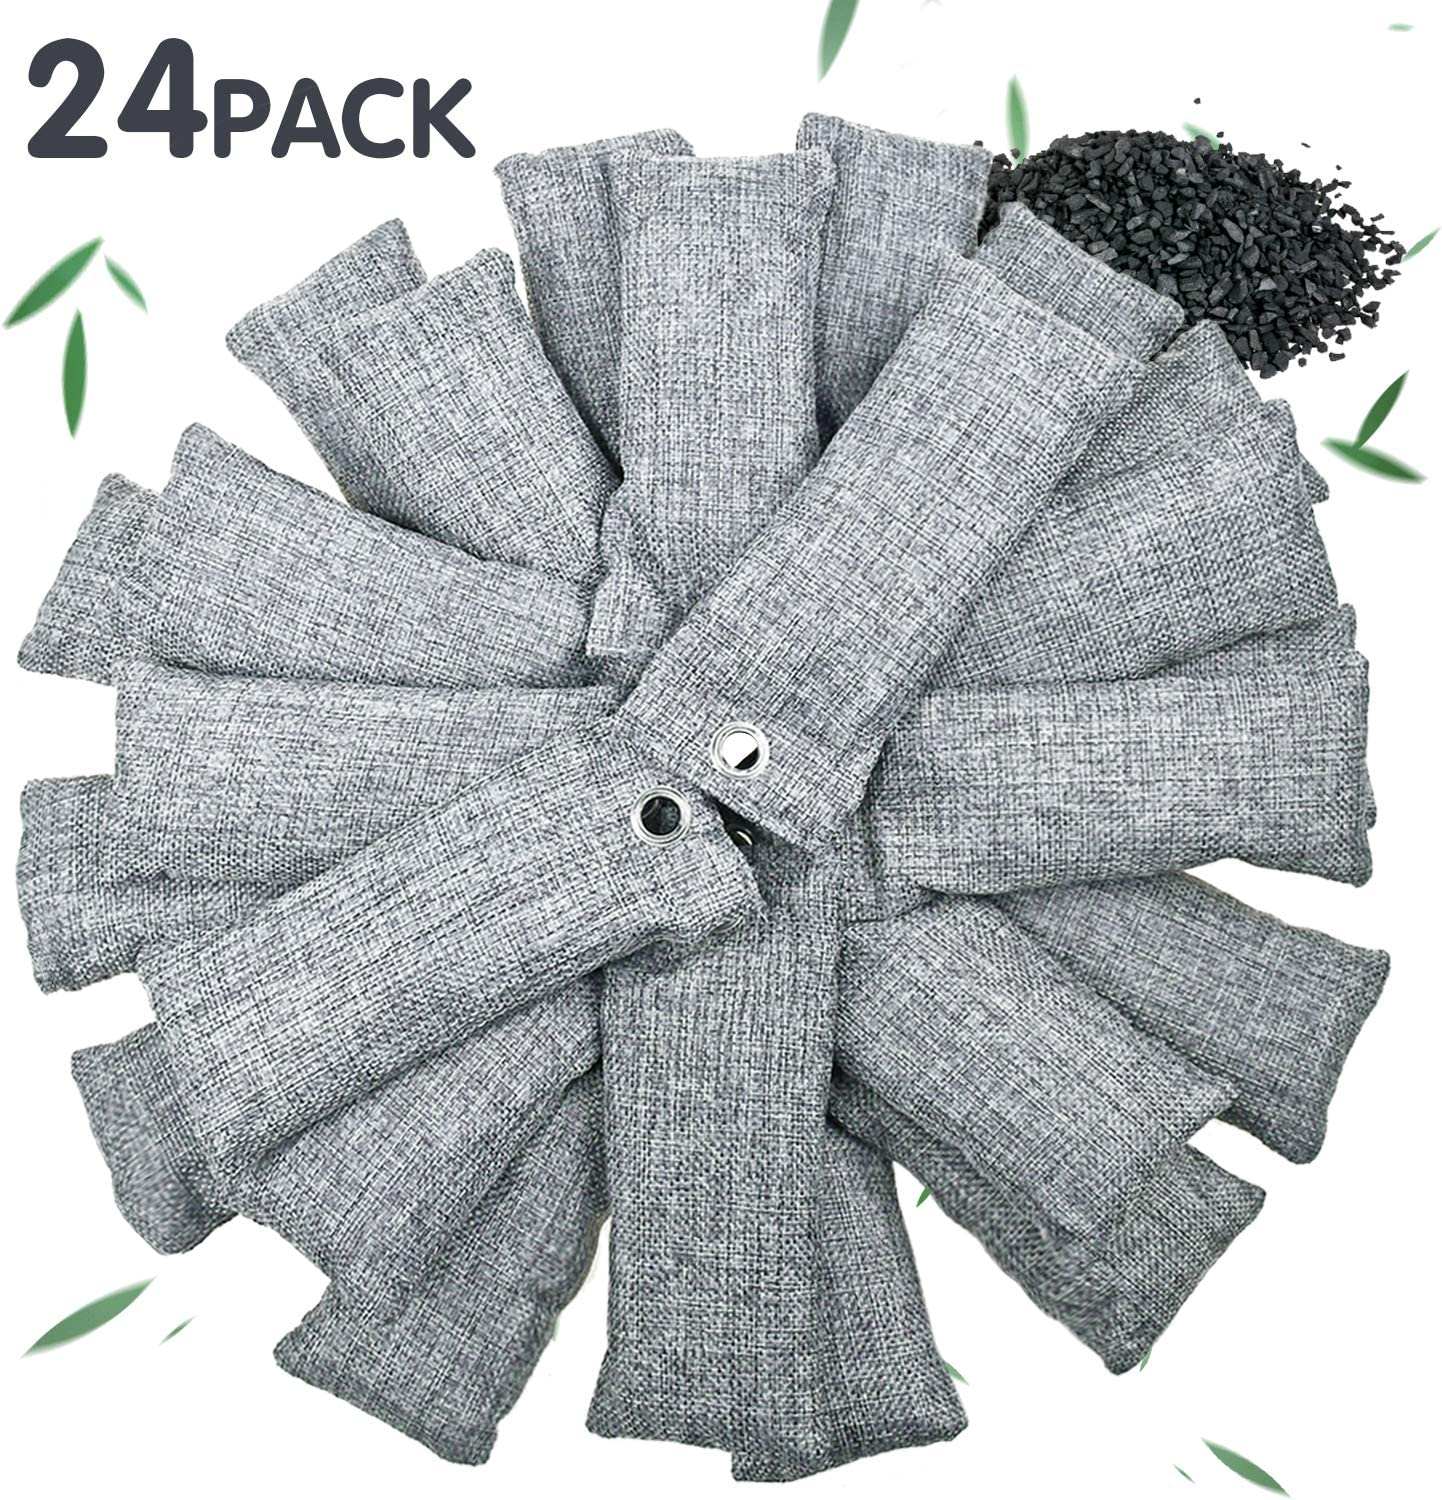 24 Pack Bamboo Charcoal Air Purifying Bag for Shoes, Natural Air Purifying Bags, Activated Charcoal Odor Eliminators, Home and Car Air Purifier, Closet Freshener,Odor Eliminating Charcoal Bags